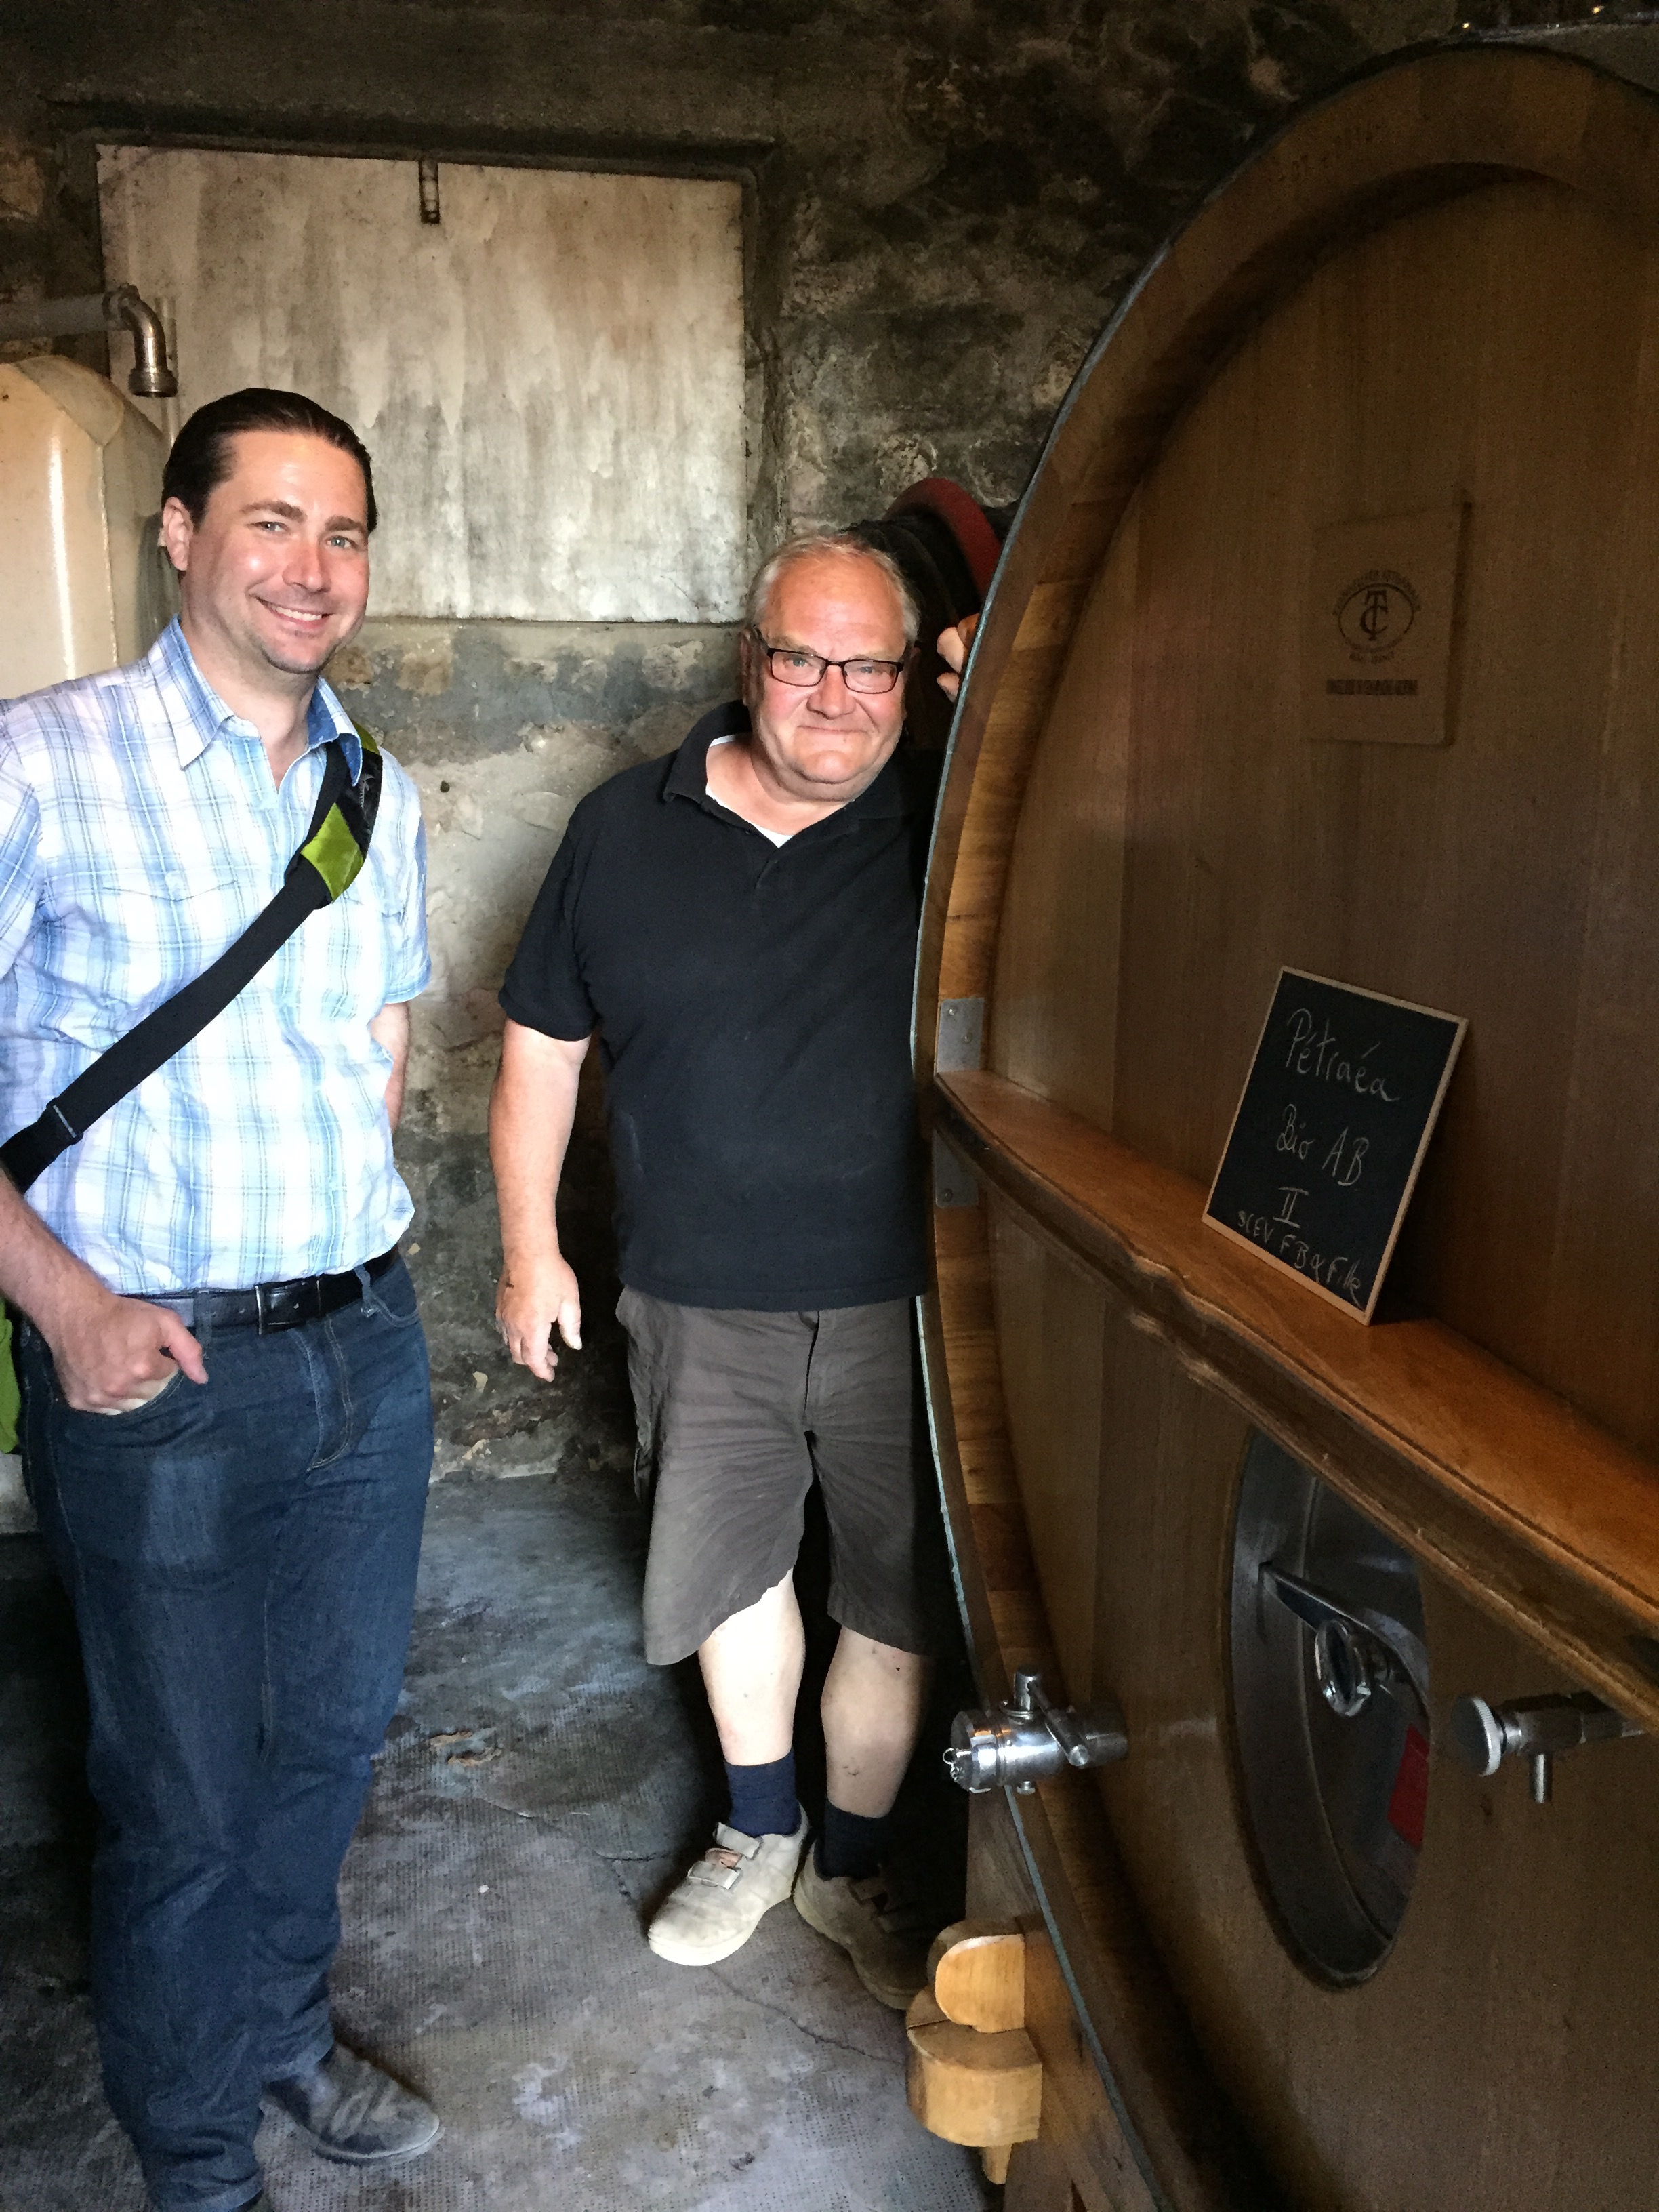 Francis and I with the kickstarter foudre